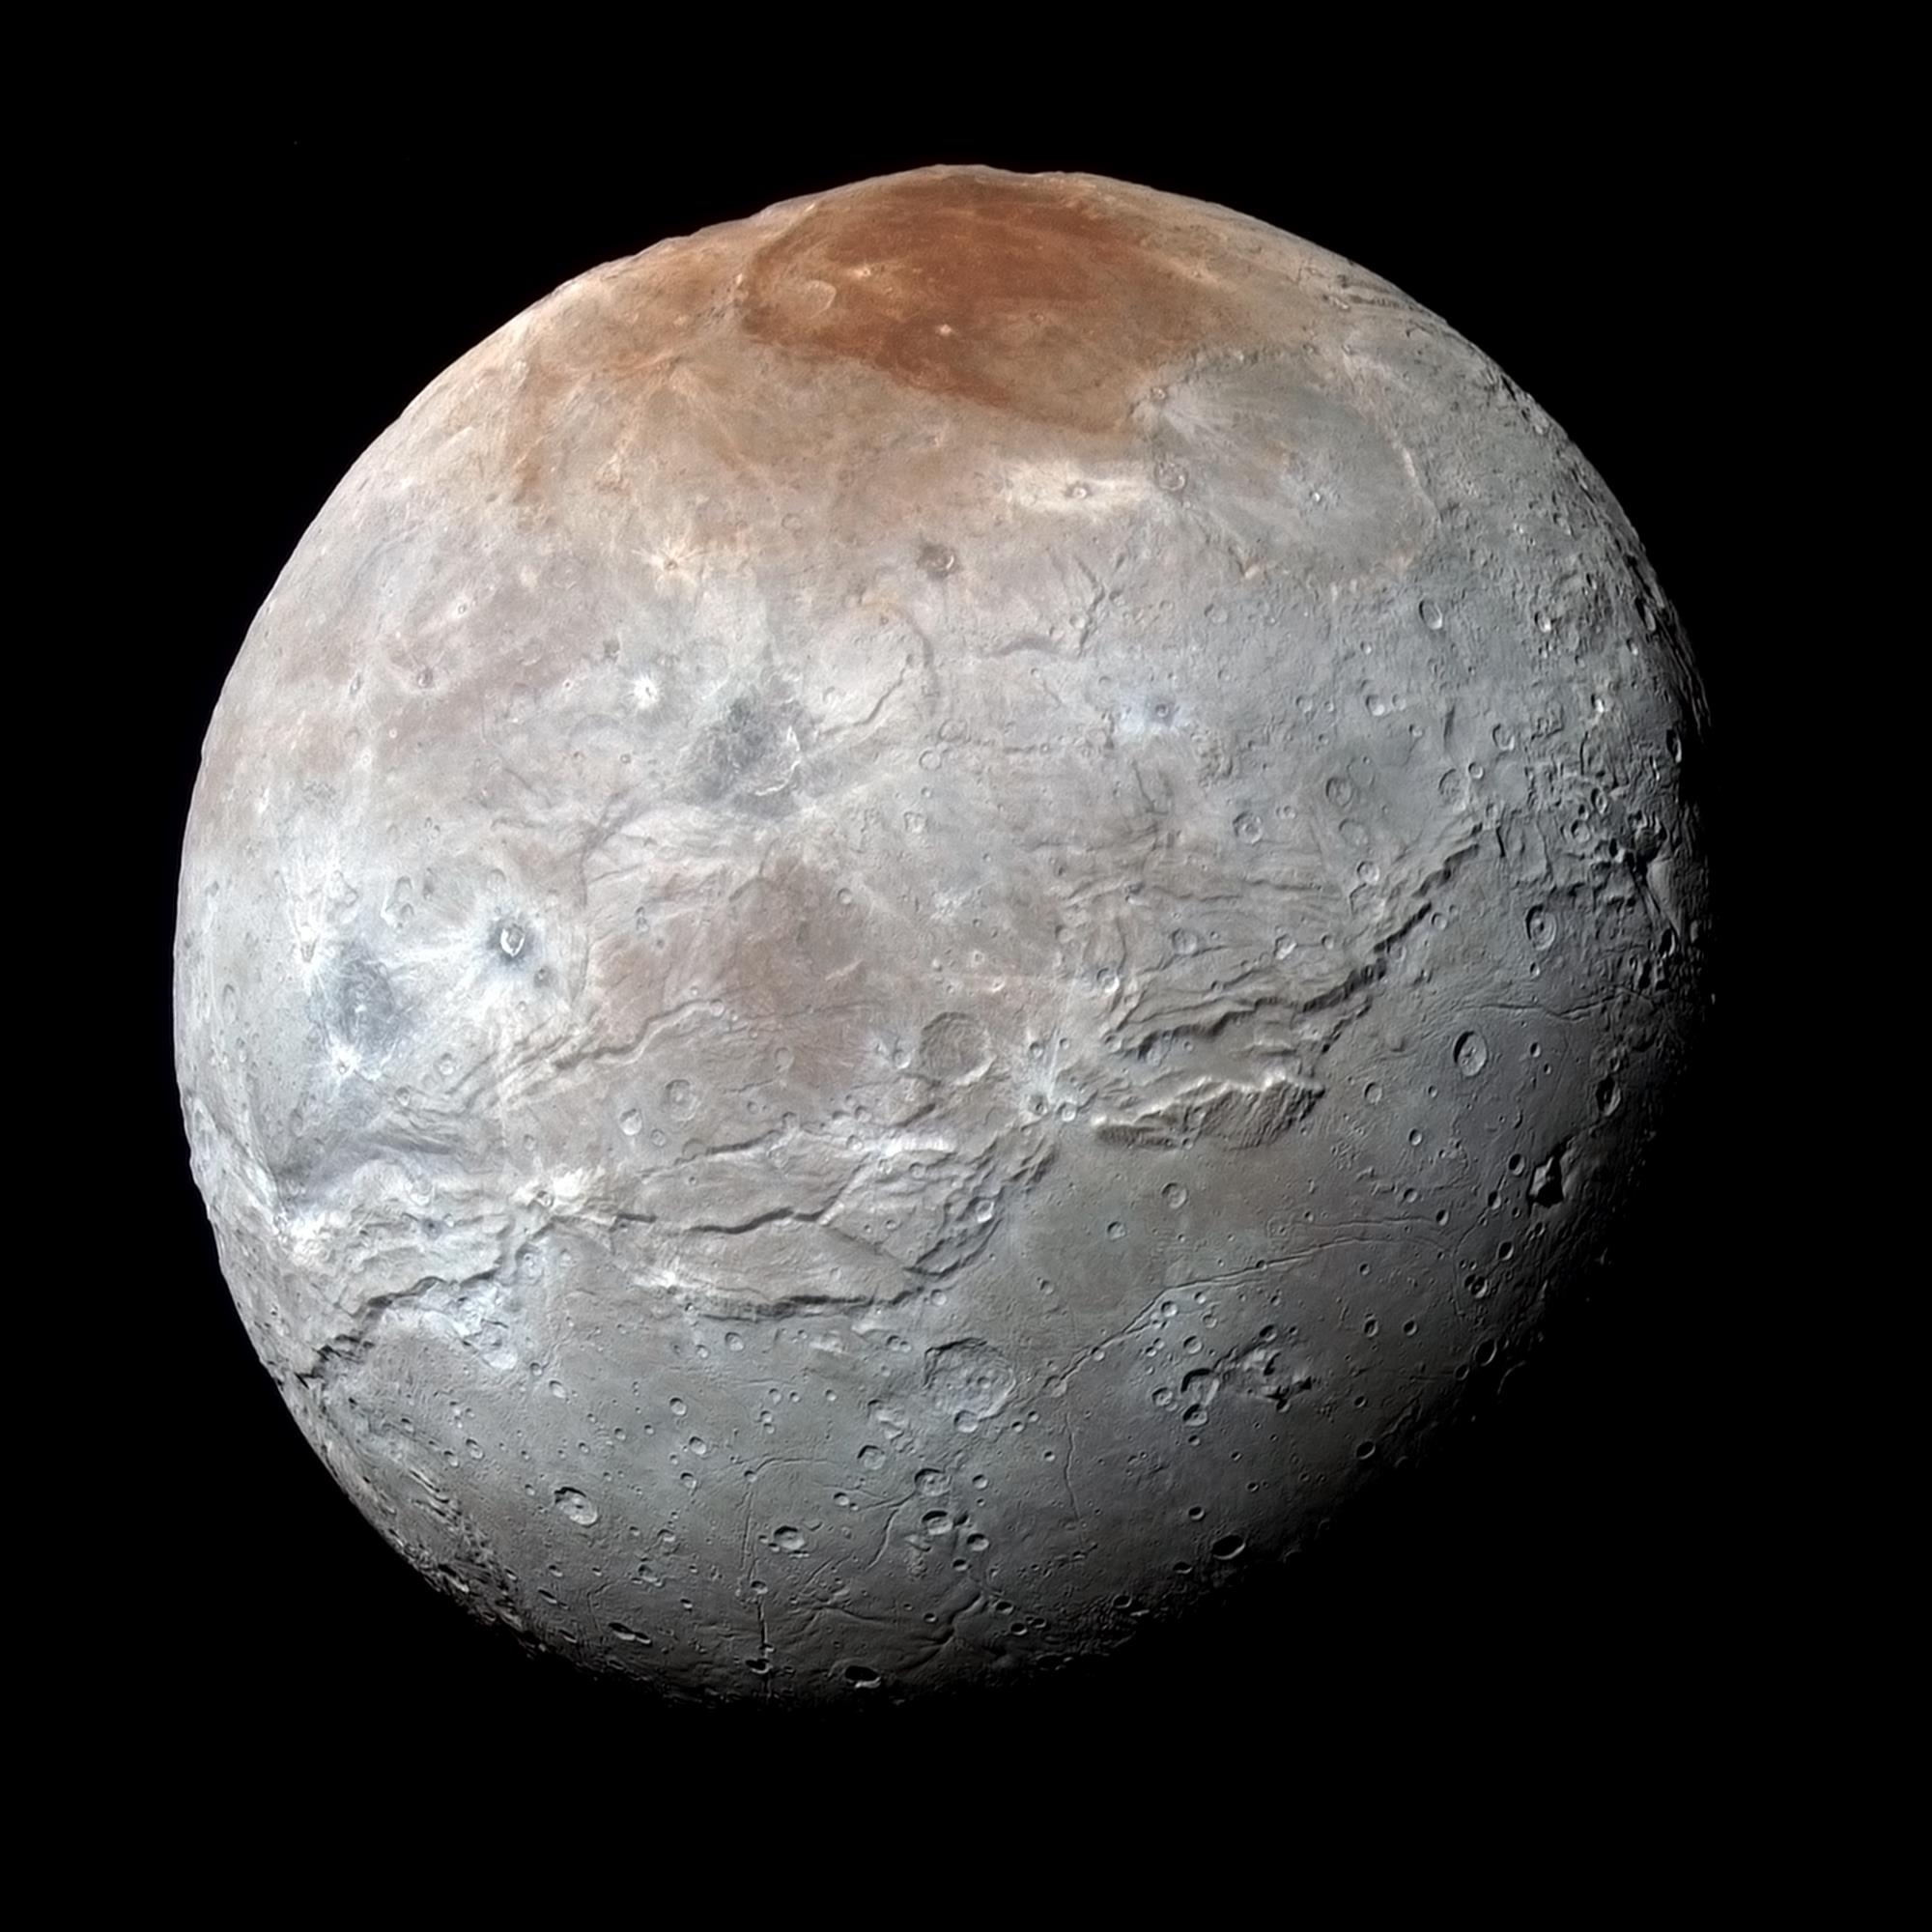 Fly Over Pluto's Moon In Spectacular New NASA Images